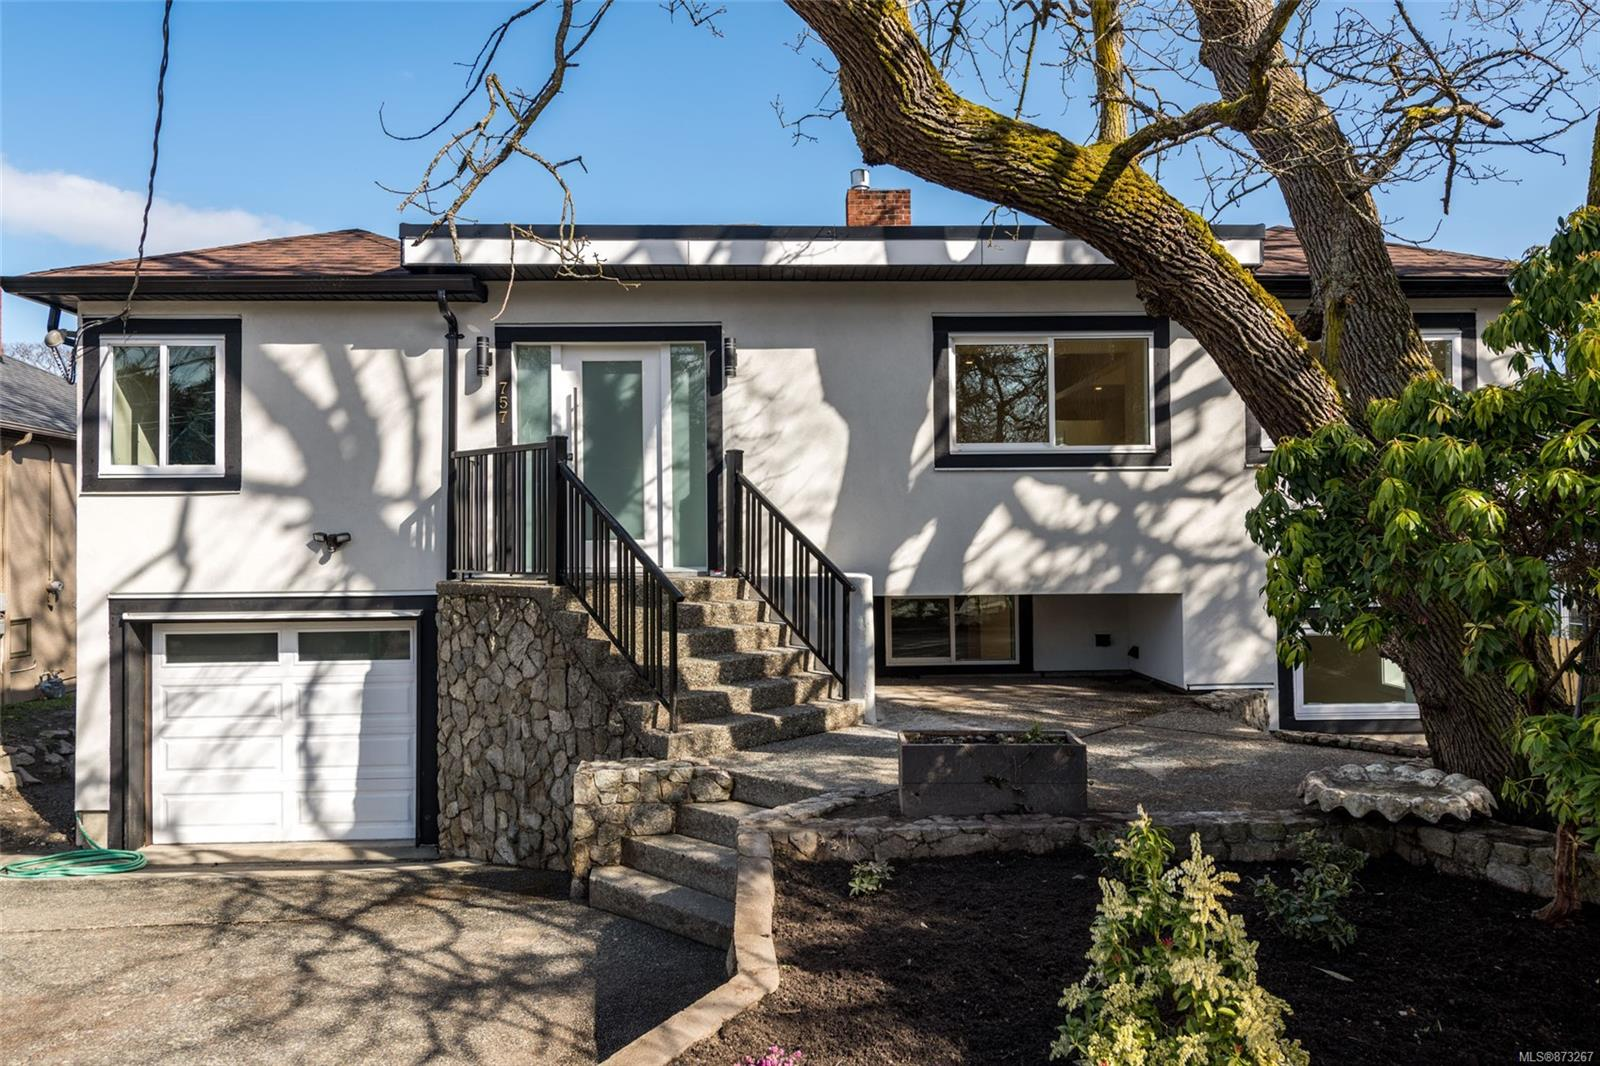 Video/virtual tour available.  You've Found Home.   Completely Renovated 5 bed, 4 baths, 2 kitchens + self-contained oversized rec room with its own full bath & wet bar that could be used for home gym/office/game room, etc.  3,530  S.F of very flexible Floor Plan on this huge 57 wide x 210 feet deep (12,000 S.F)  sun-drenched, peaceful yard.  Features New Bosch appliance package, Heat pump, new roof, all new wiring, plumbing, roof, windows too many updates to list. If you are looking to live in a light-filled home that is steps to the ocean, one of Victoria's prestigious golf courses, great schools Whether you are into paddleboarding, hiking, golfing, road biking, or just ocean strolling. Monterey Middle School, McNeal Bay, Anderson Hill, Vitoria Golf Course, Demitasse Café & garden Centre are just steps away.  Endless possibilities in this Yard for veggie gardening, swimming pool, pickleball court, mini orchard, Garden house/studio or have it all!